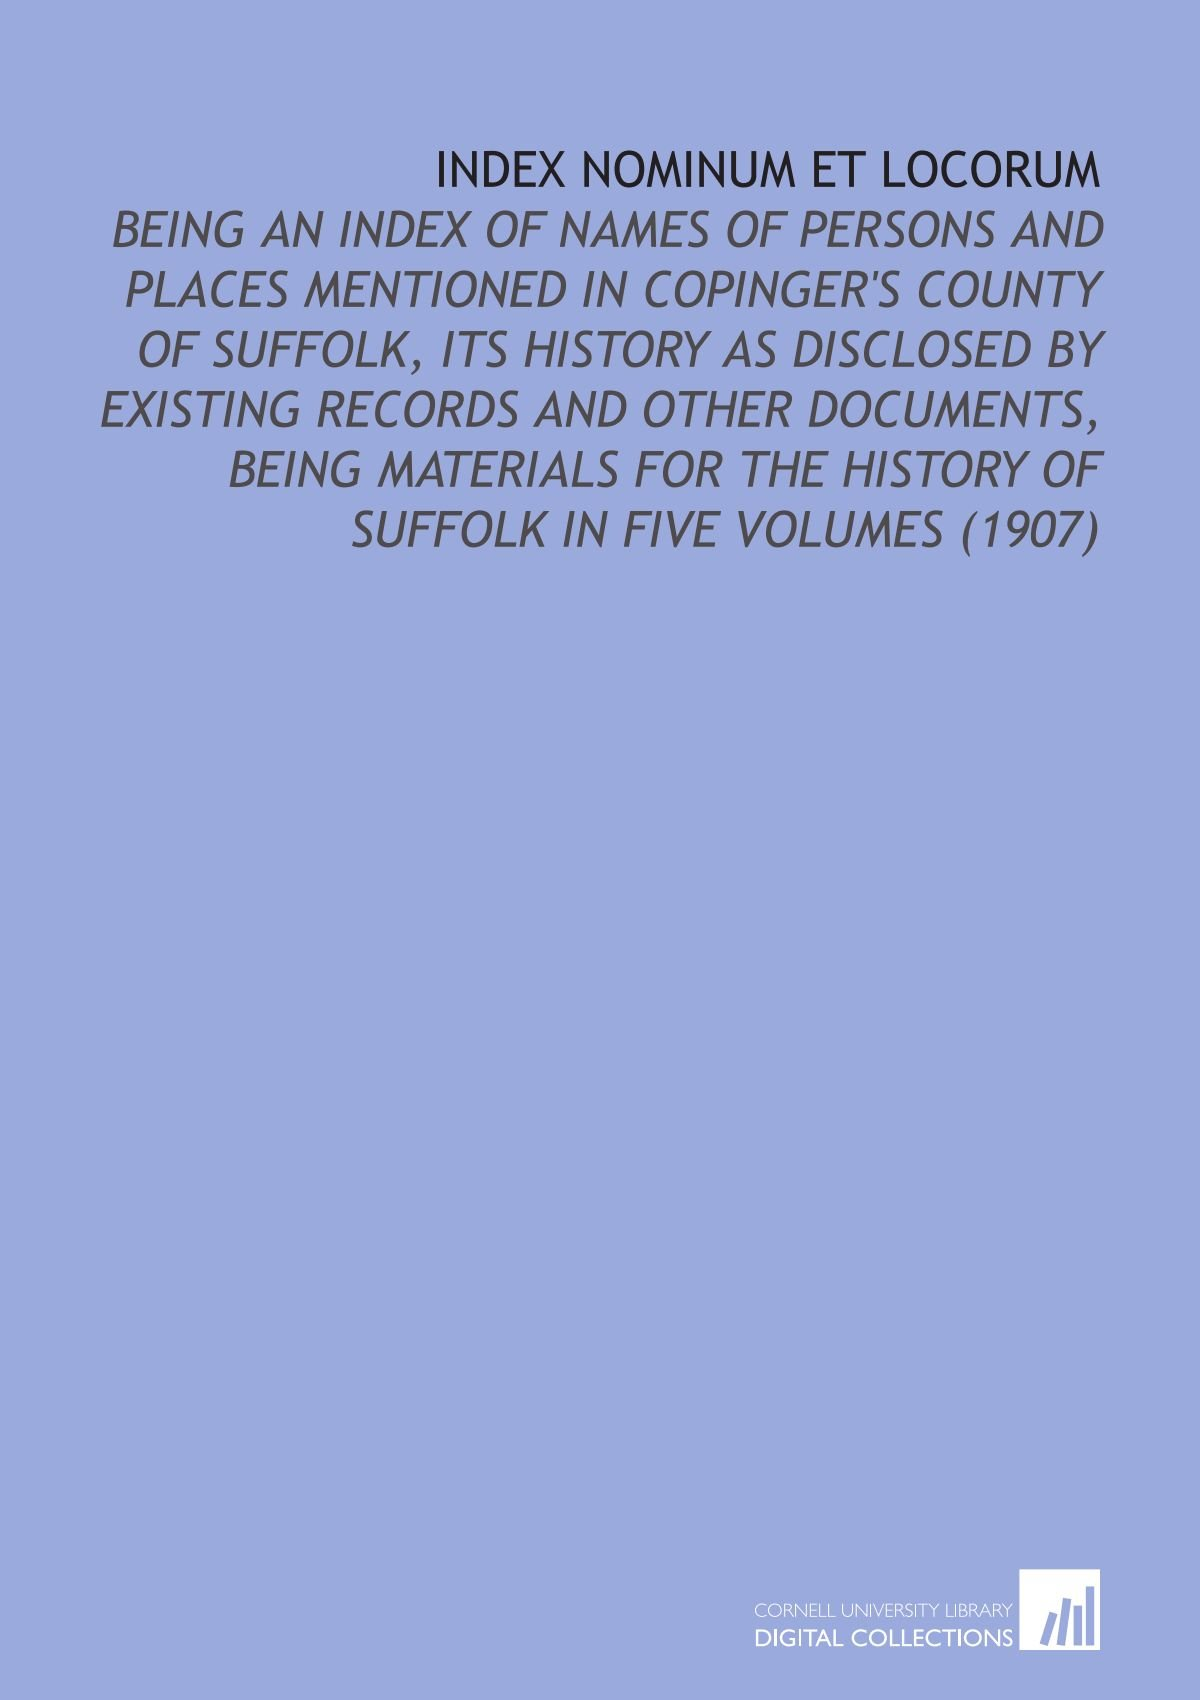 Index Nominum Et Locorum: Being an Index of Names of Persons and Places Mentioned in Copinger's County of Suffolk, its History as Disclosed By ... the History of Suffolk in Five Volumes (1907) ebook